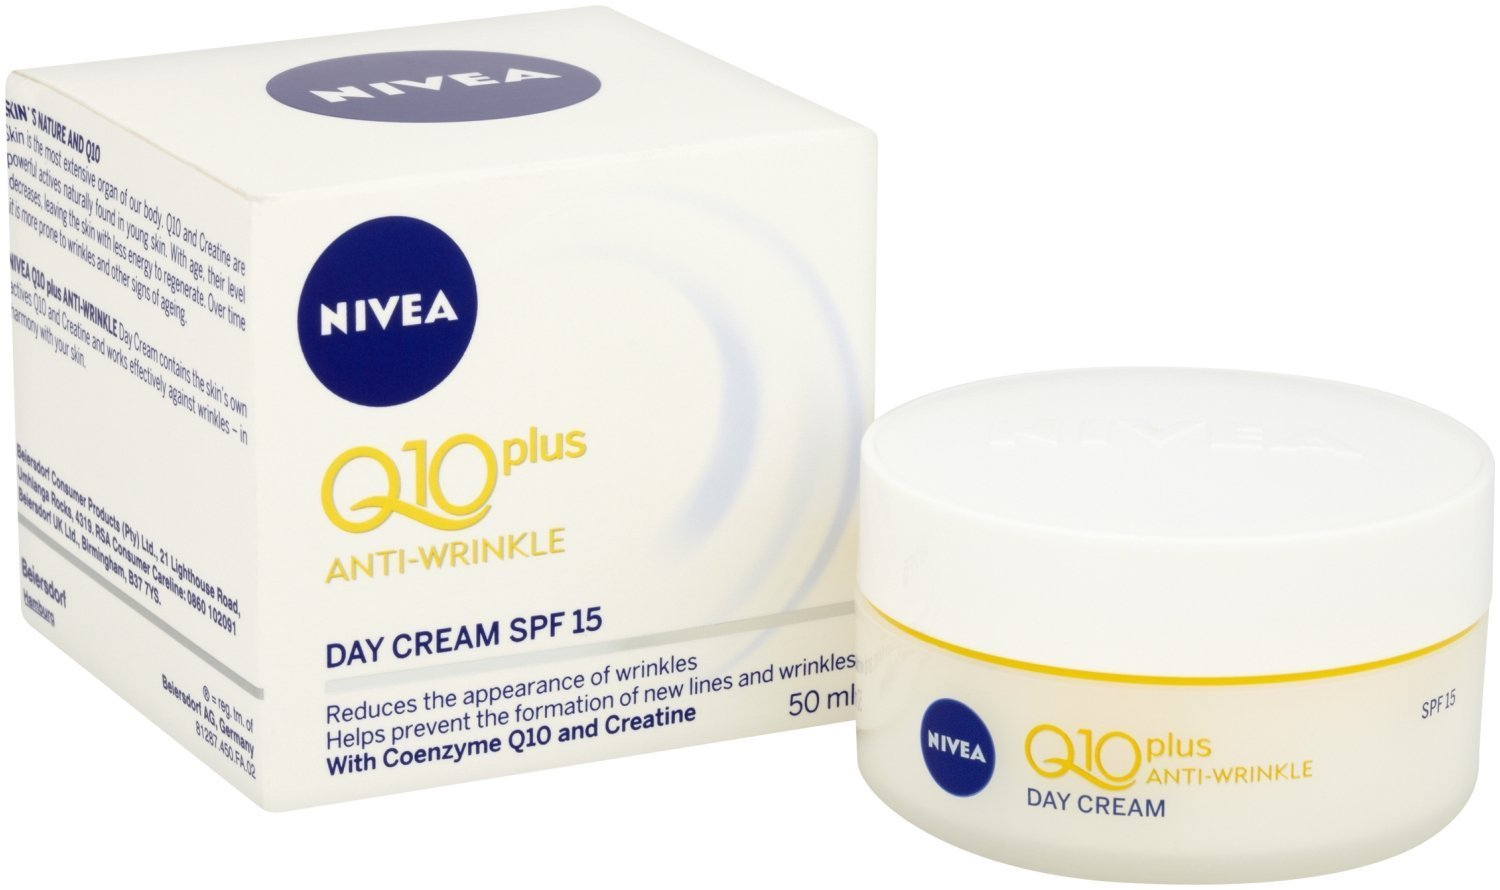 Nivea Q10 Outlet sale 4 years warranty feature Plus Spf 15 Anti-Wrinkle Face Ml 50 Pack Day Cream O